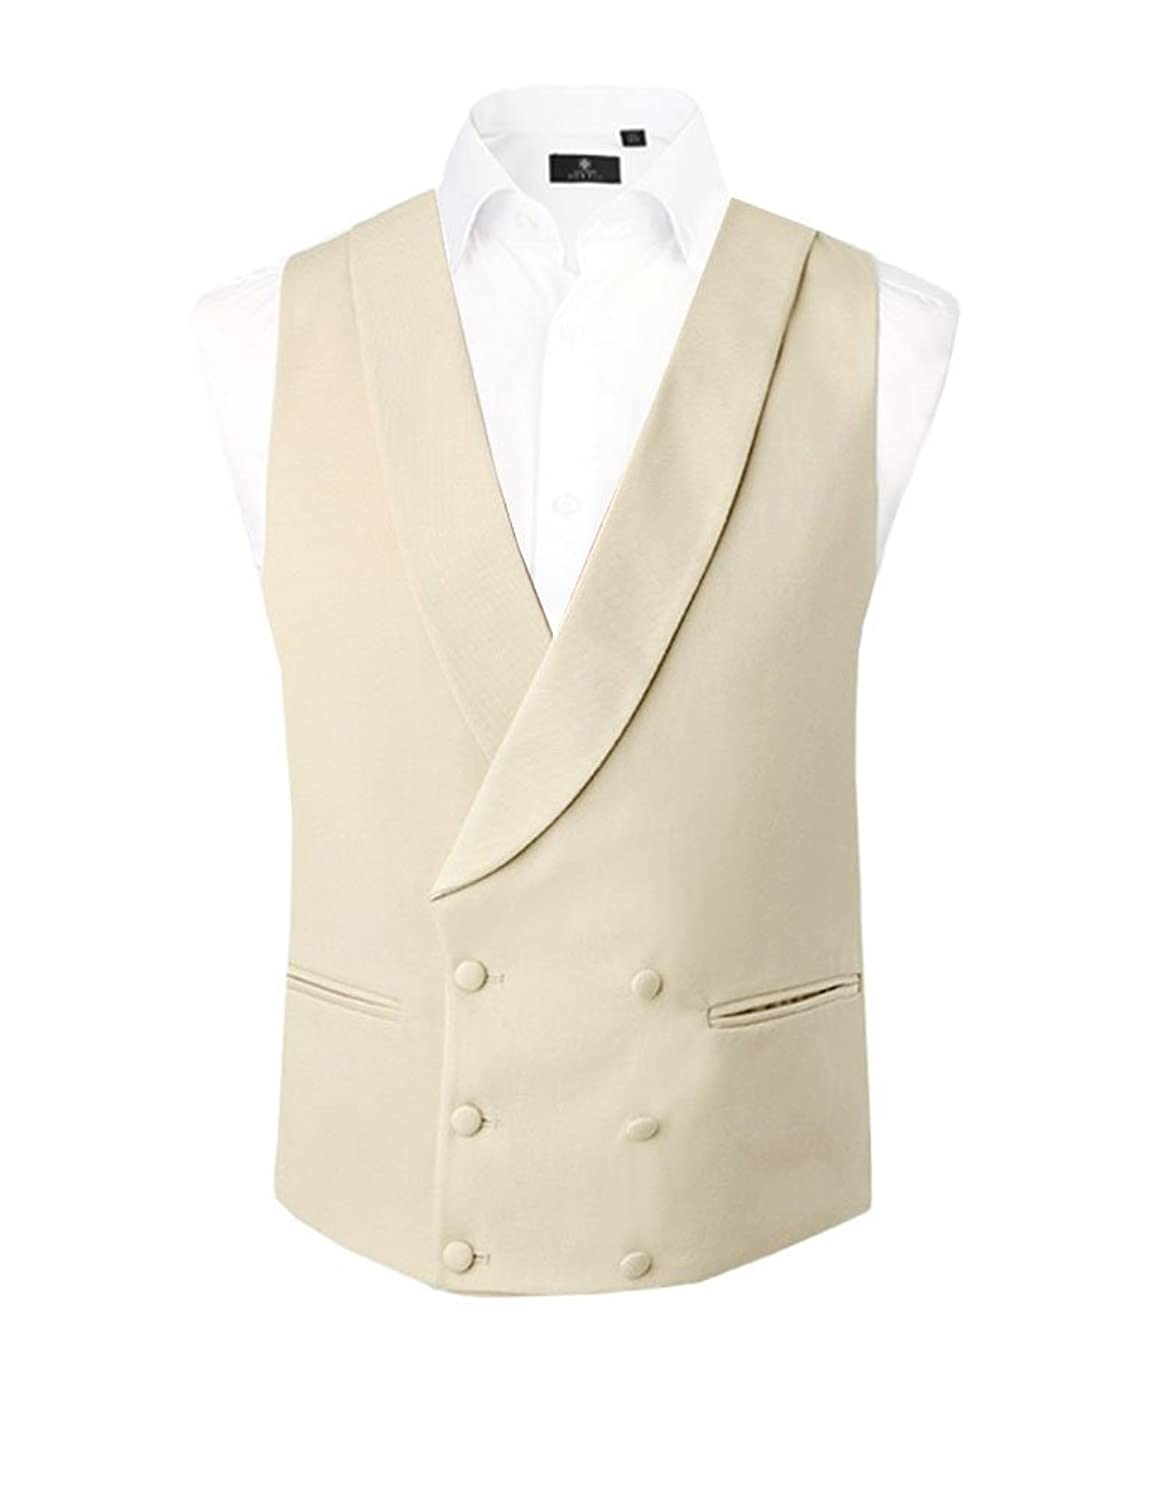 Victorian Inspired Womens Clothing Mens Gold/Buff Double Breasted Shawl Lapel Morning Suit Waistcoat £39.99 AT vintagedancer.com